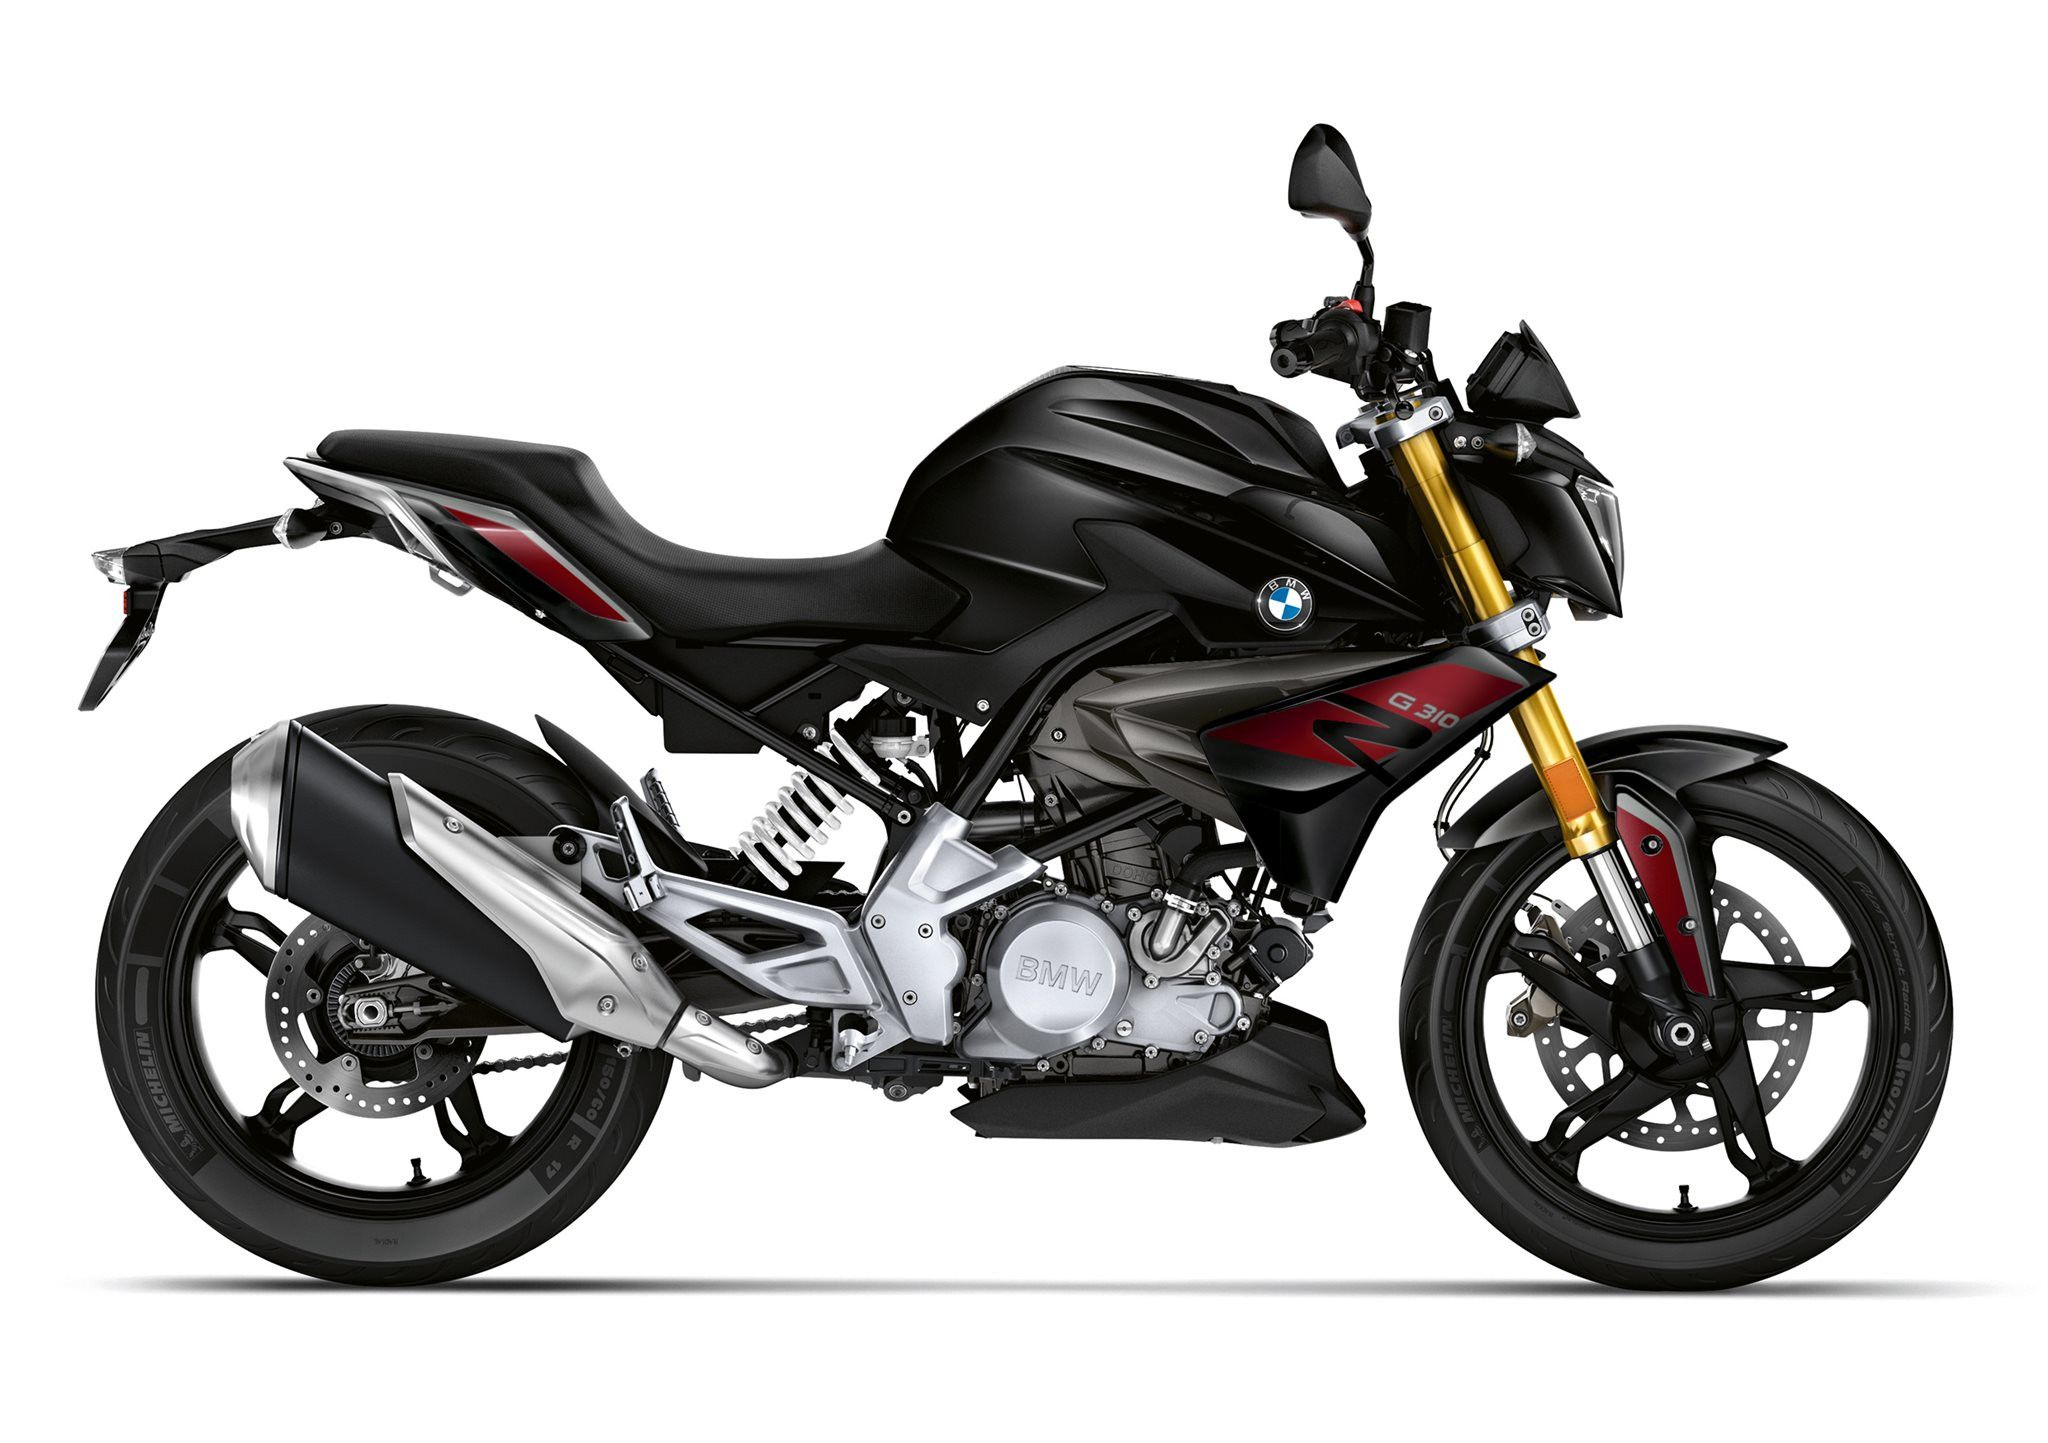 2020 Bmw G 310 R Redesign And Price Check More At Http Dailymaza